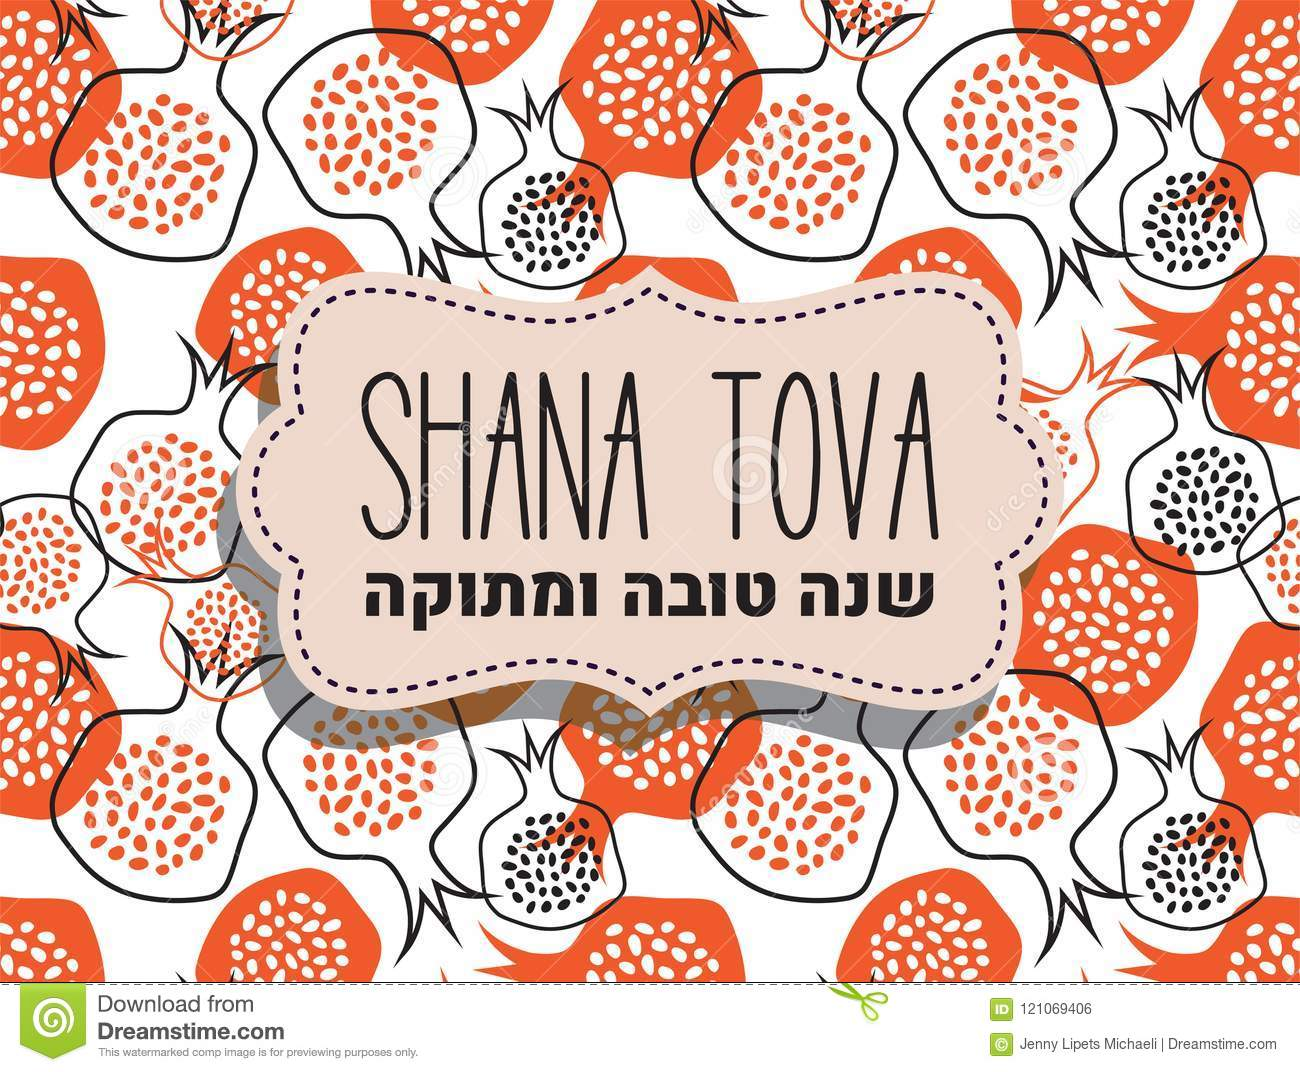 Shana tova happy new year in hebrew rosh hashanah greeting card download shana tova happy new year in hebrew rosh hashanah greeting card with pomegranate m4hsunfo